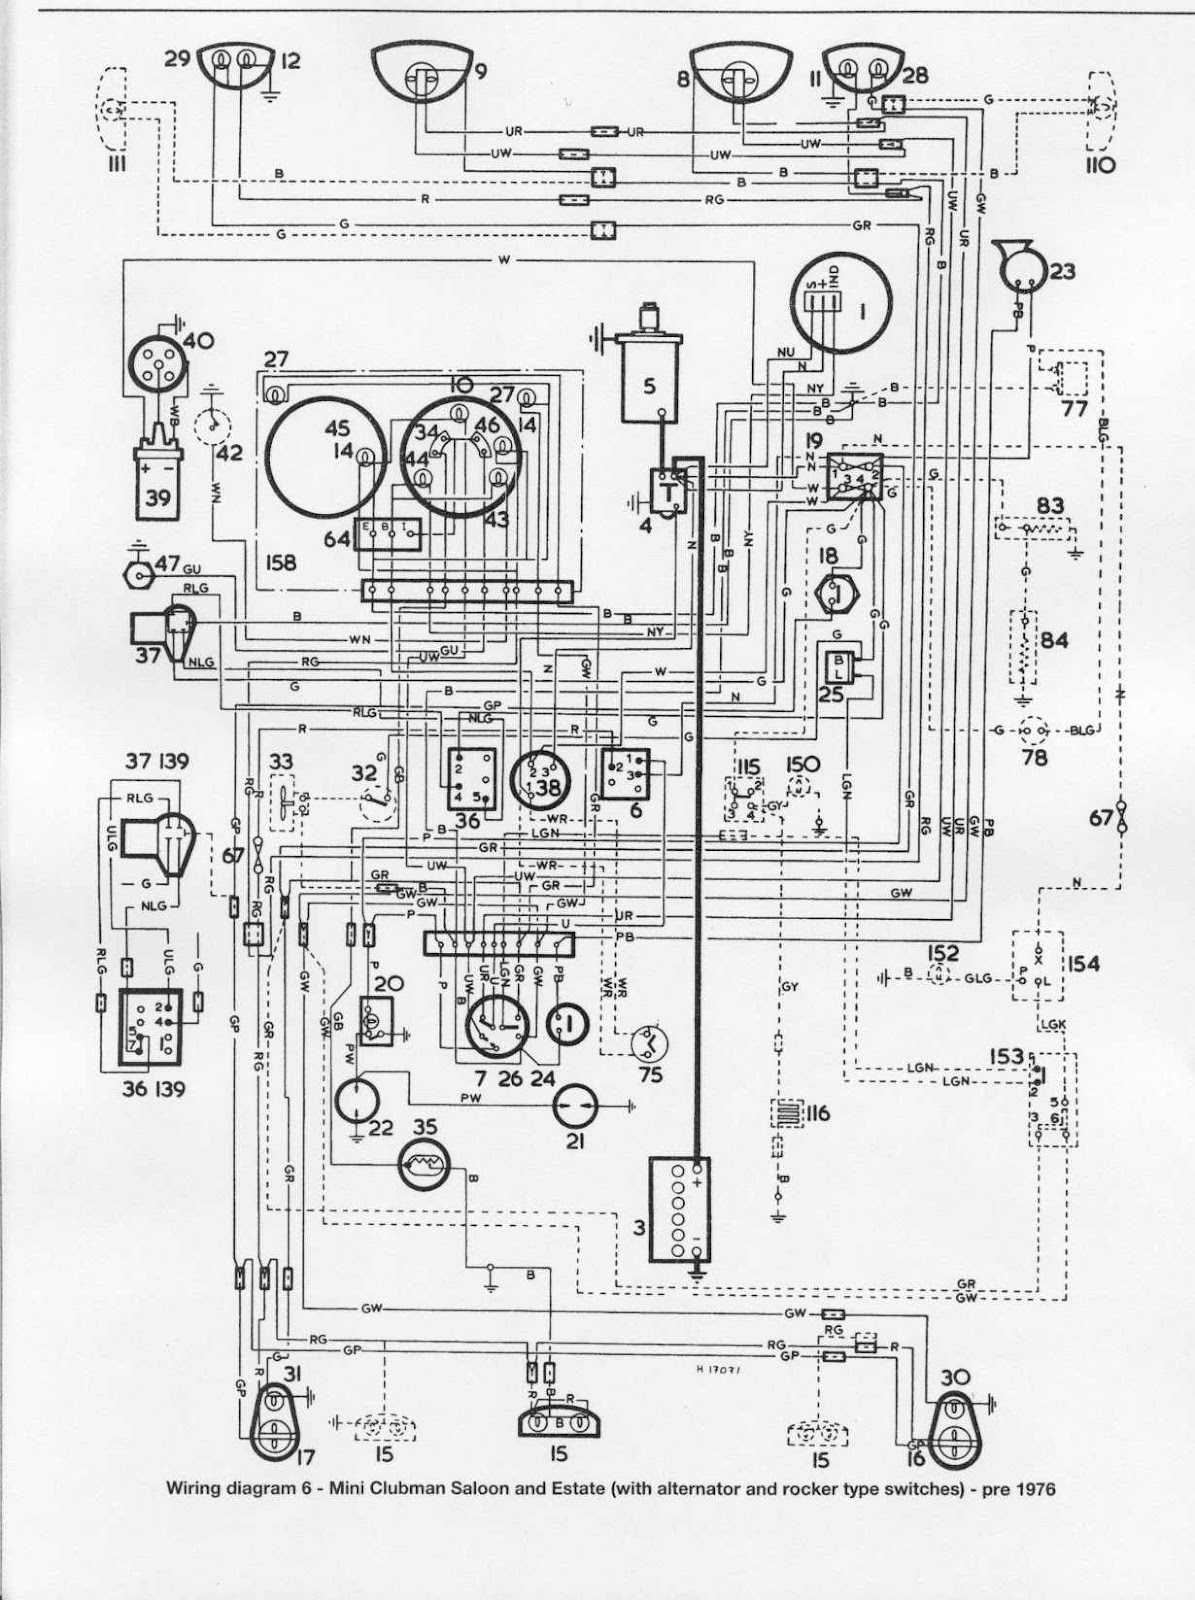 4 wire wiring diagram light